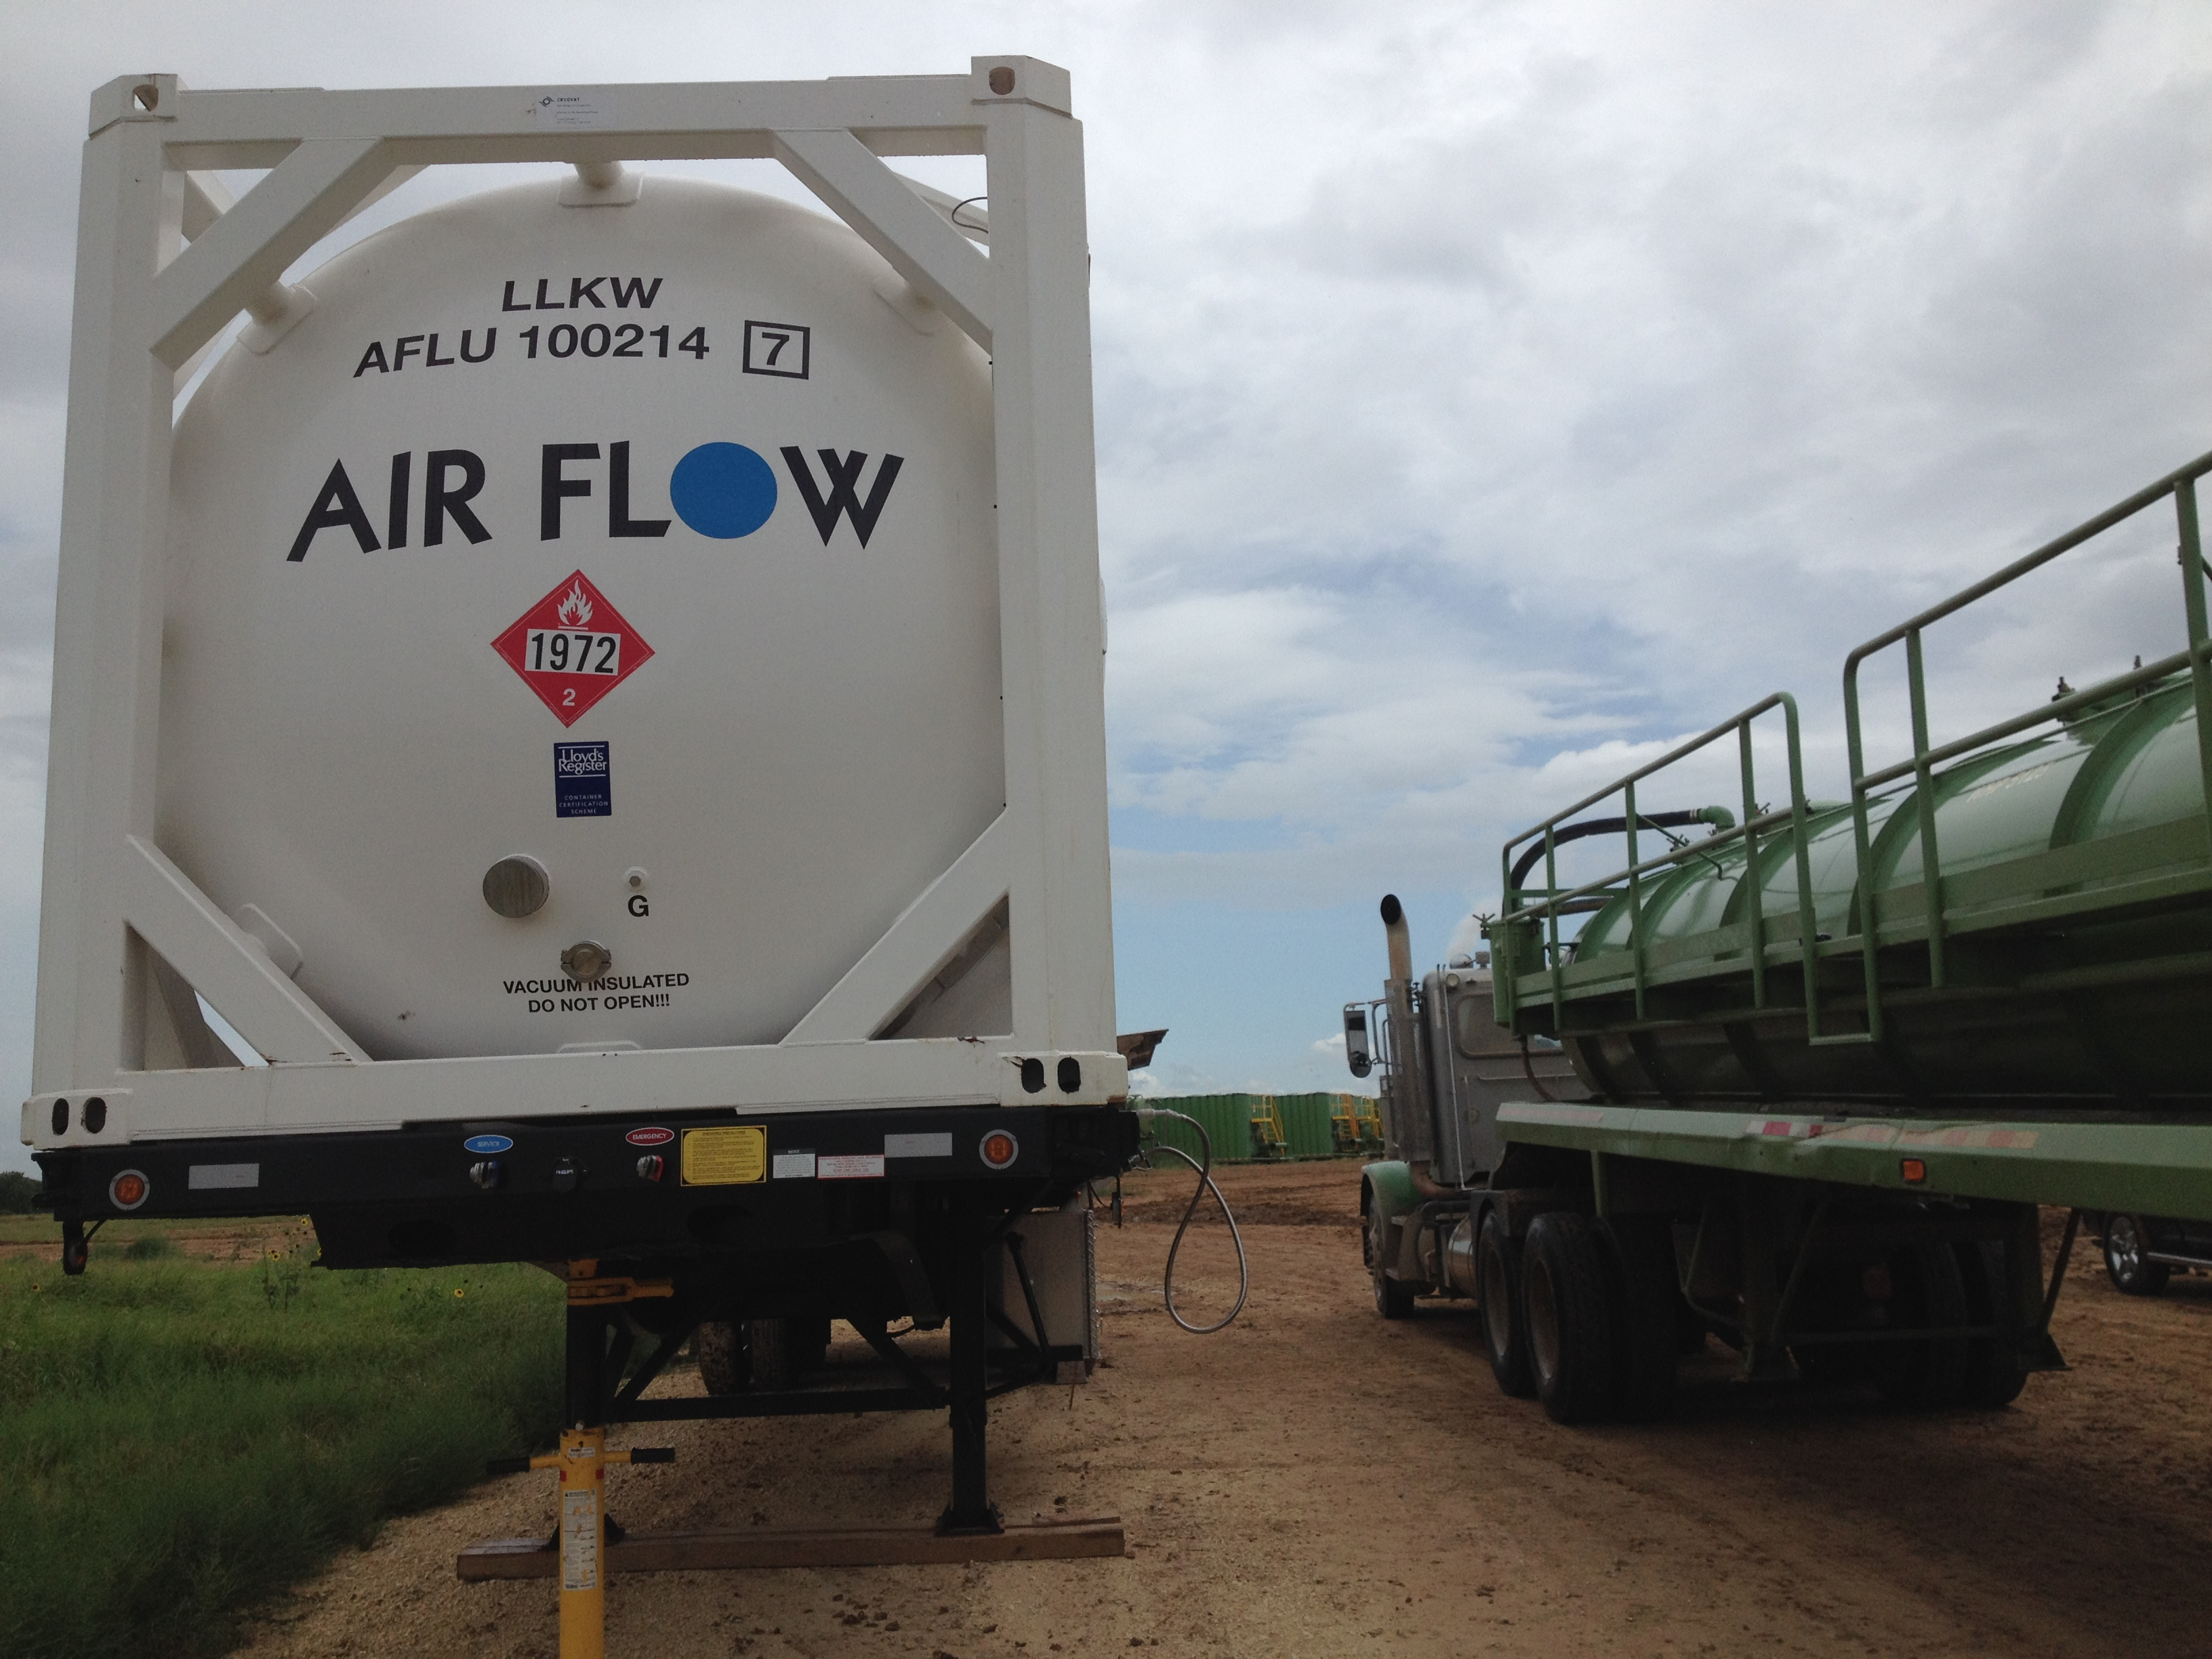 Air Flow 's 45ft iso tank container fueling LNG trucks-509x370